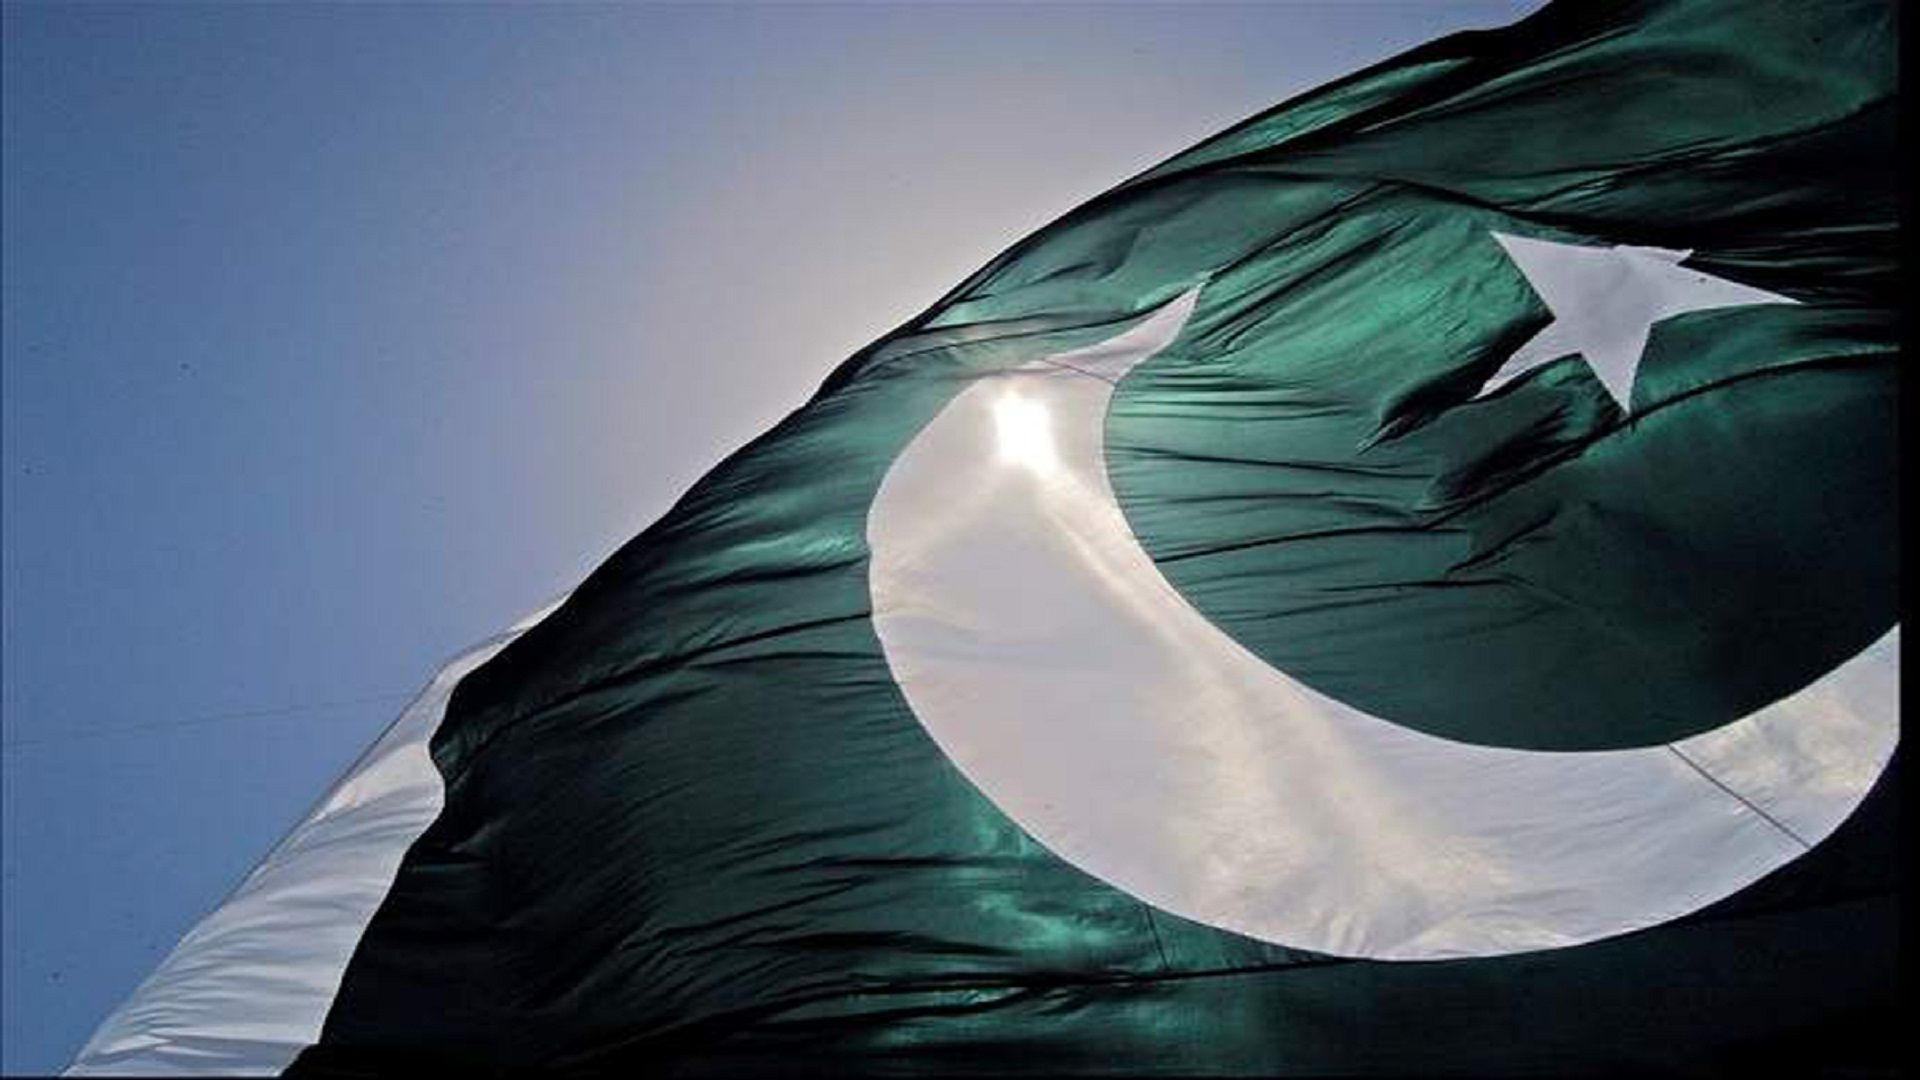 Beautiful Hd Wallpapers Of Pakistani Flag Etc Fn Pakistan Flag Pakistani Flag Pakistan